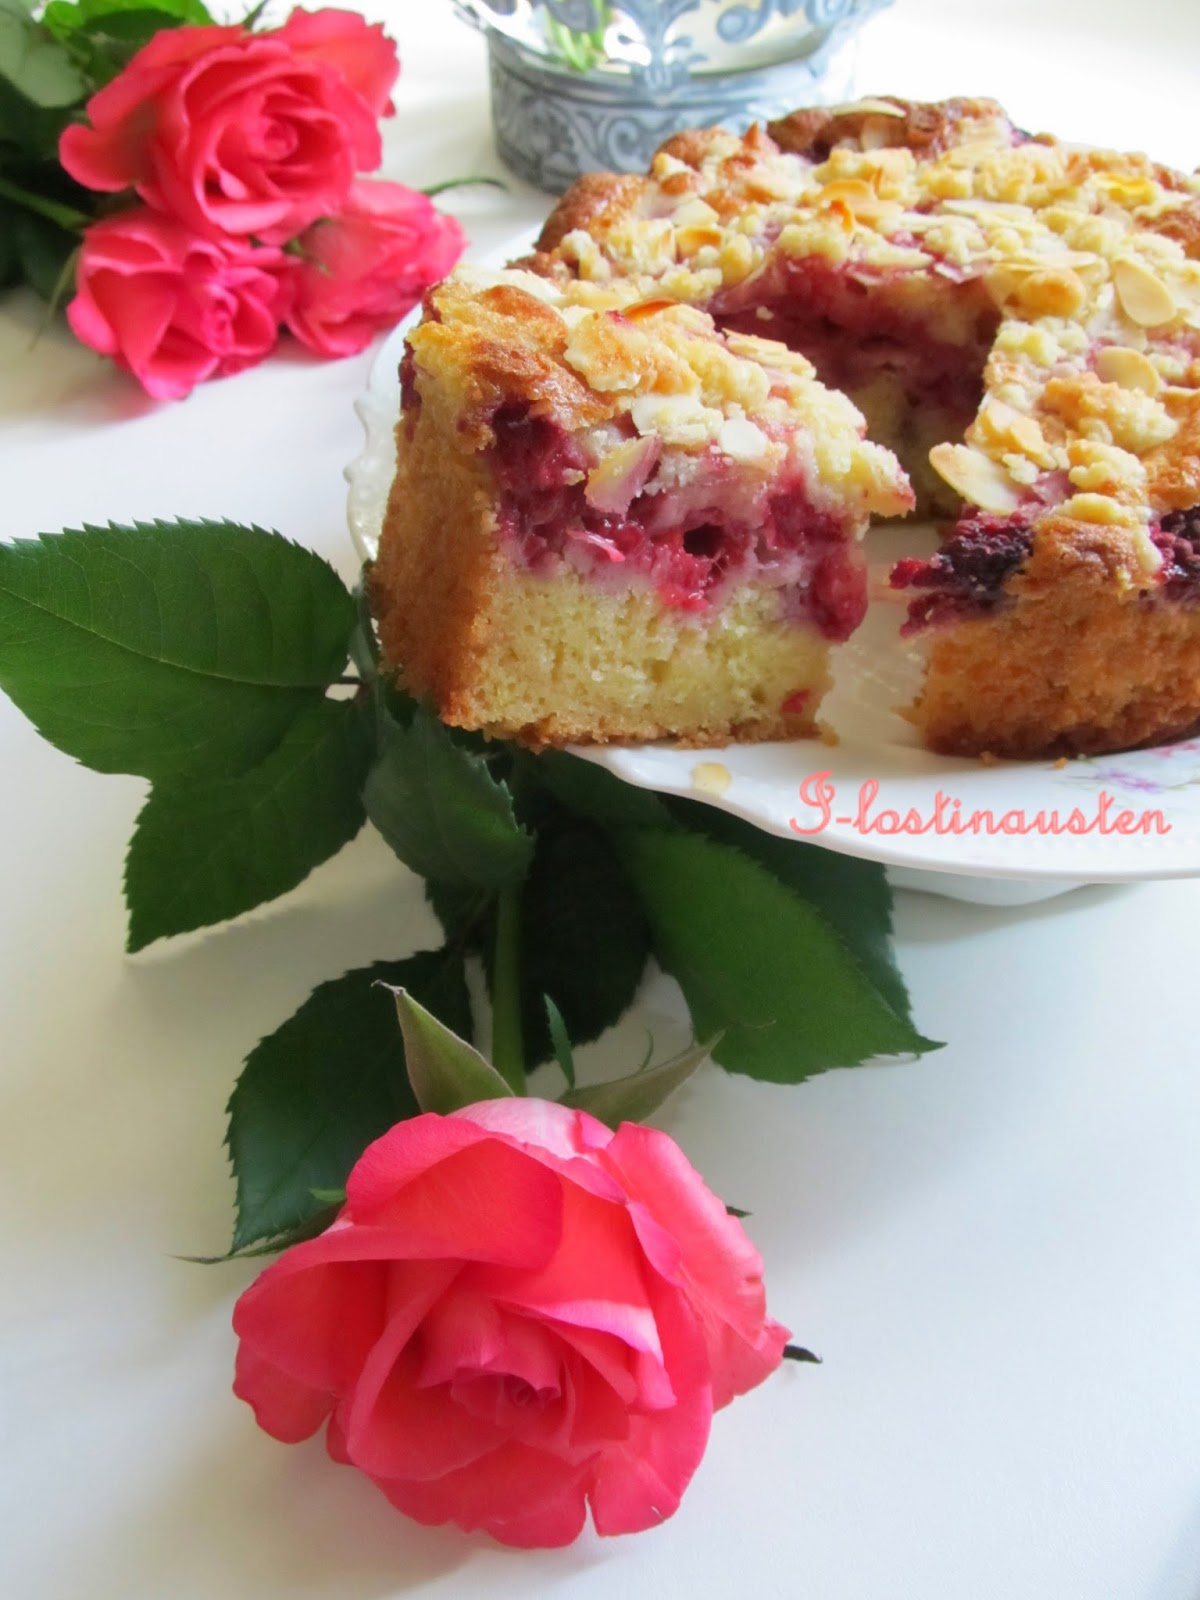 I-Lost in Austen: Raspberry - Almond Coffee Cake (THB)